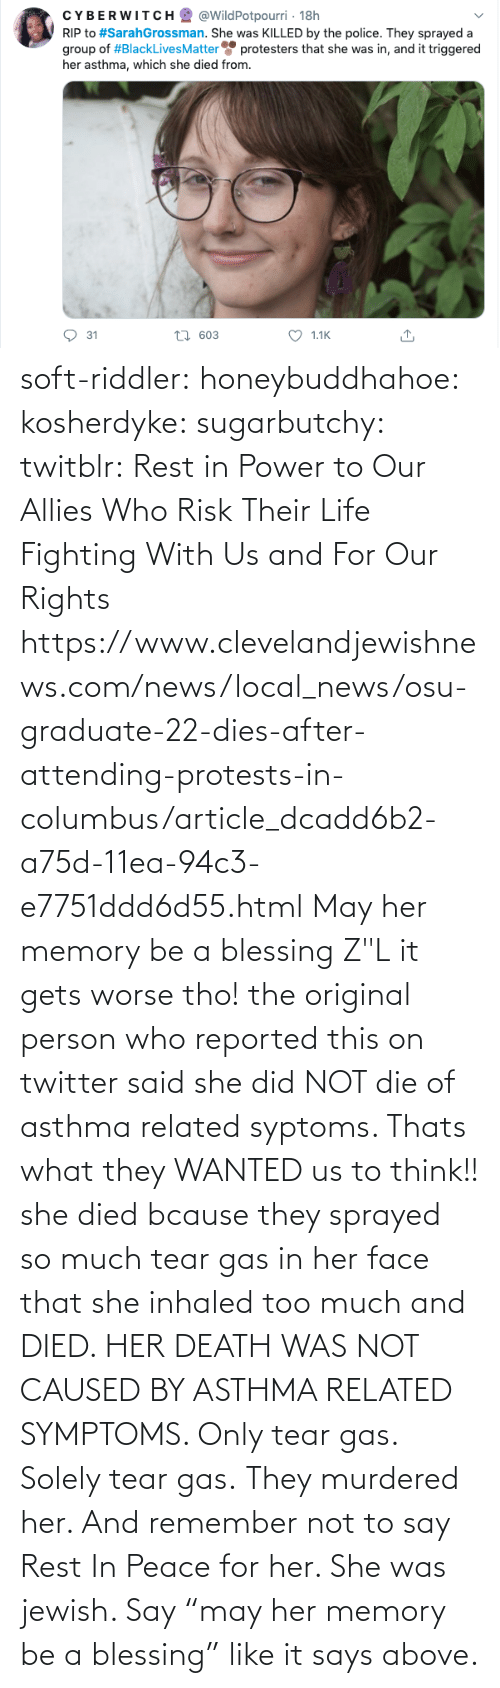 "She Did: soft-riddler:  honeybuddhahoe:  kosherdyke:  sugarbutchy:  twitblr: Rest in Power to Our Allies Who Risk Their Life Fighting With Us and For Our Rights https://www.clevelandjewishnews.com/news/local_news/osu-graduate-22-dies-after-attending-protests-in-columbus/article_dcadd6b2-a75d-11ea-94c3-e7751ddd6d55.html    May her memory be a blessing Z""L  it gets worse tho! the original person who reported this on twitter said she did NOT die of asthma related syptoms. Thats what they WANTED us to think!! she died bcause they sprayed so much tear gas in her face that she inhaled too much and DIED. HER DEATH WAS NOT CAUSED BY ASTHMA RELATED SYMPTOMS. Only tear gas. Solely tear gas. They murdered her.     And remember not to say Rest In Peace for her. She was jewish. Say ""may her memory be a blessing"" like it says above."